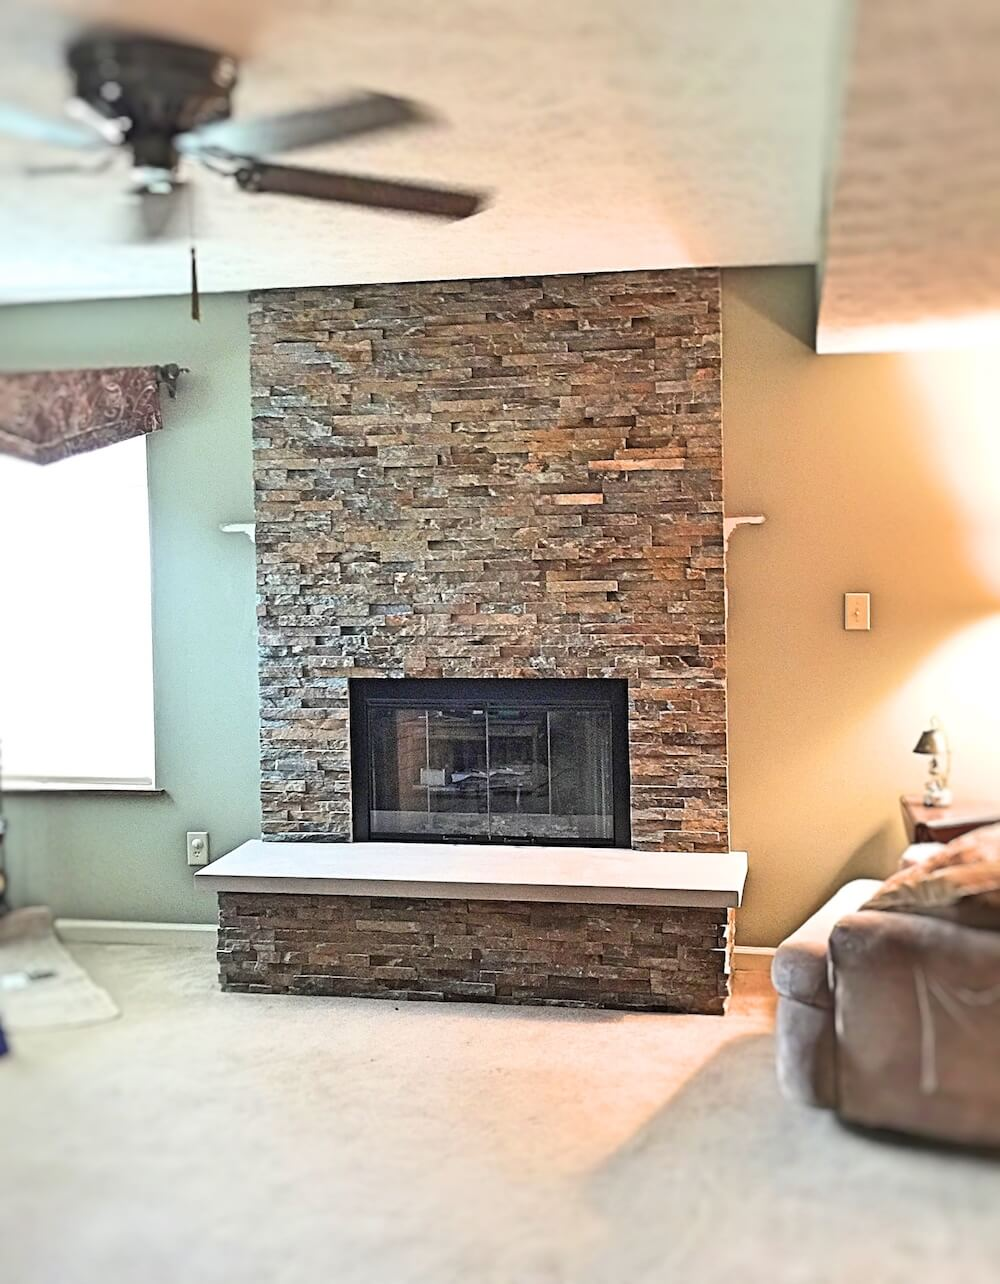 Fireplace Repair Nashville Tn Fireplace Design Nashville Chimney Masonry Outfitters